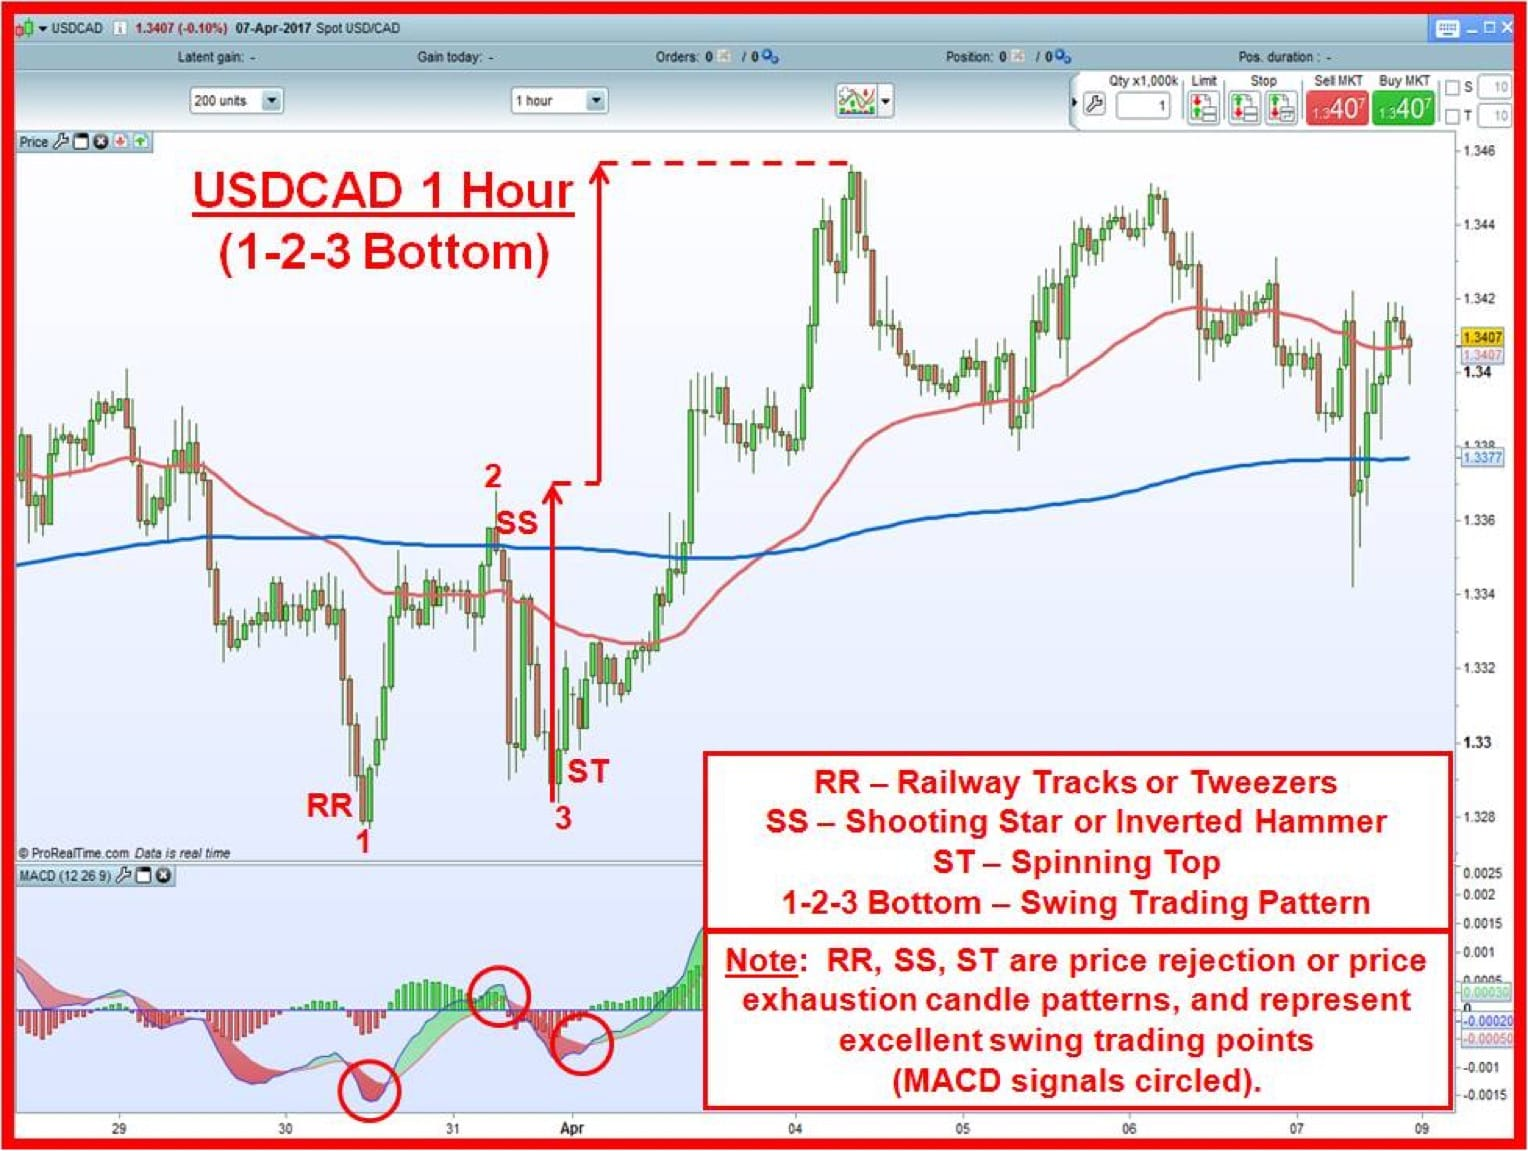 USDCAD 1 hour chart with 1-2-3 bottom, price measurement, and three candle reversal formations.